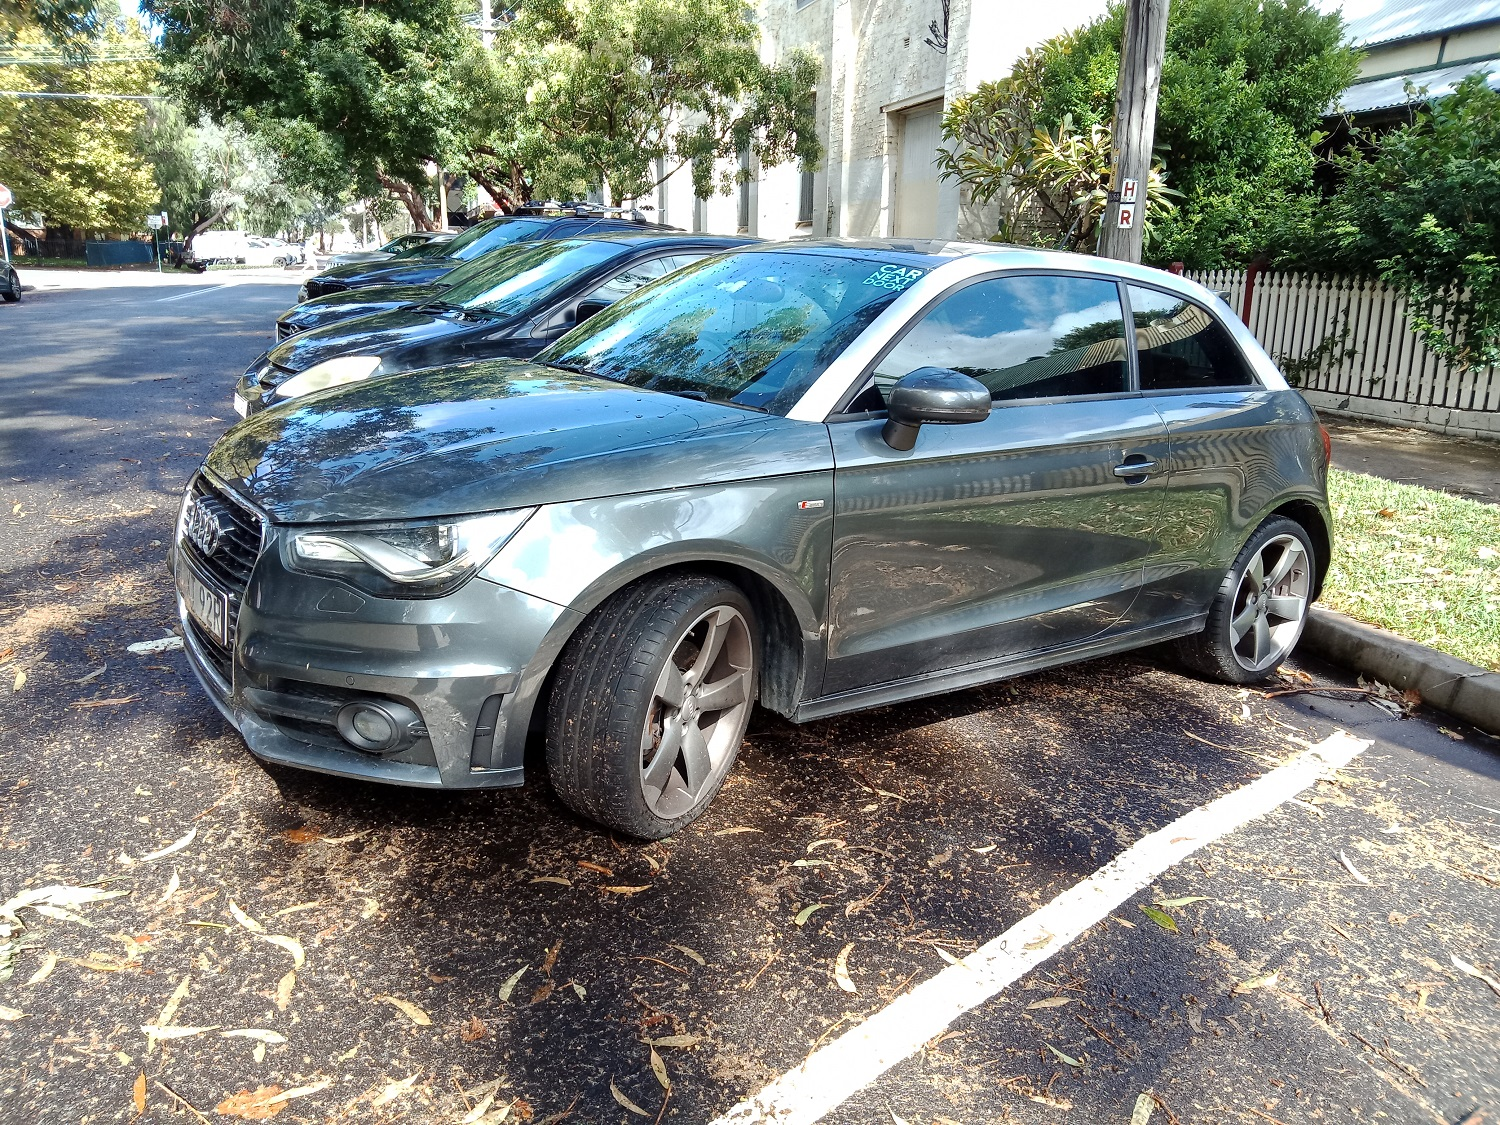 Picture of Nicholas' 2011 Audi A1